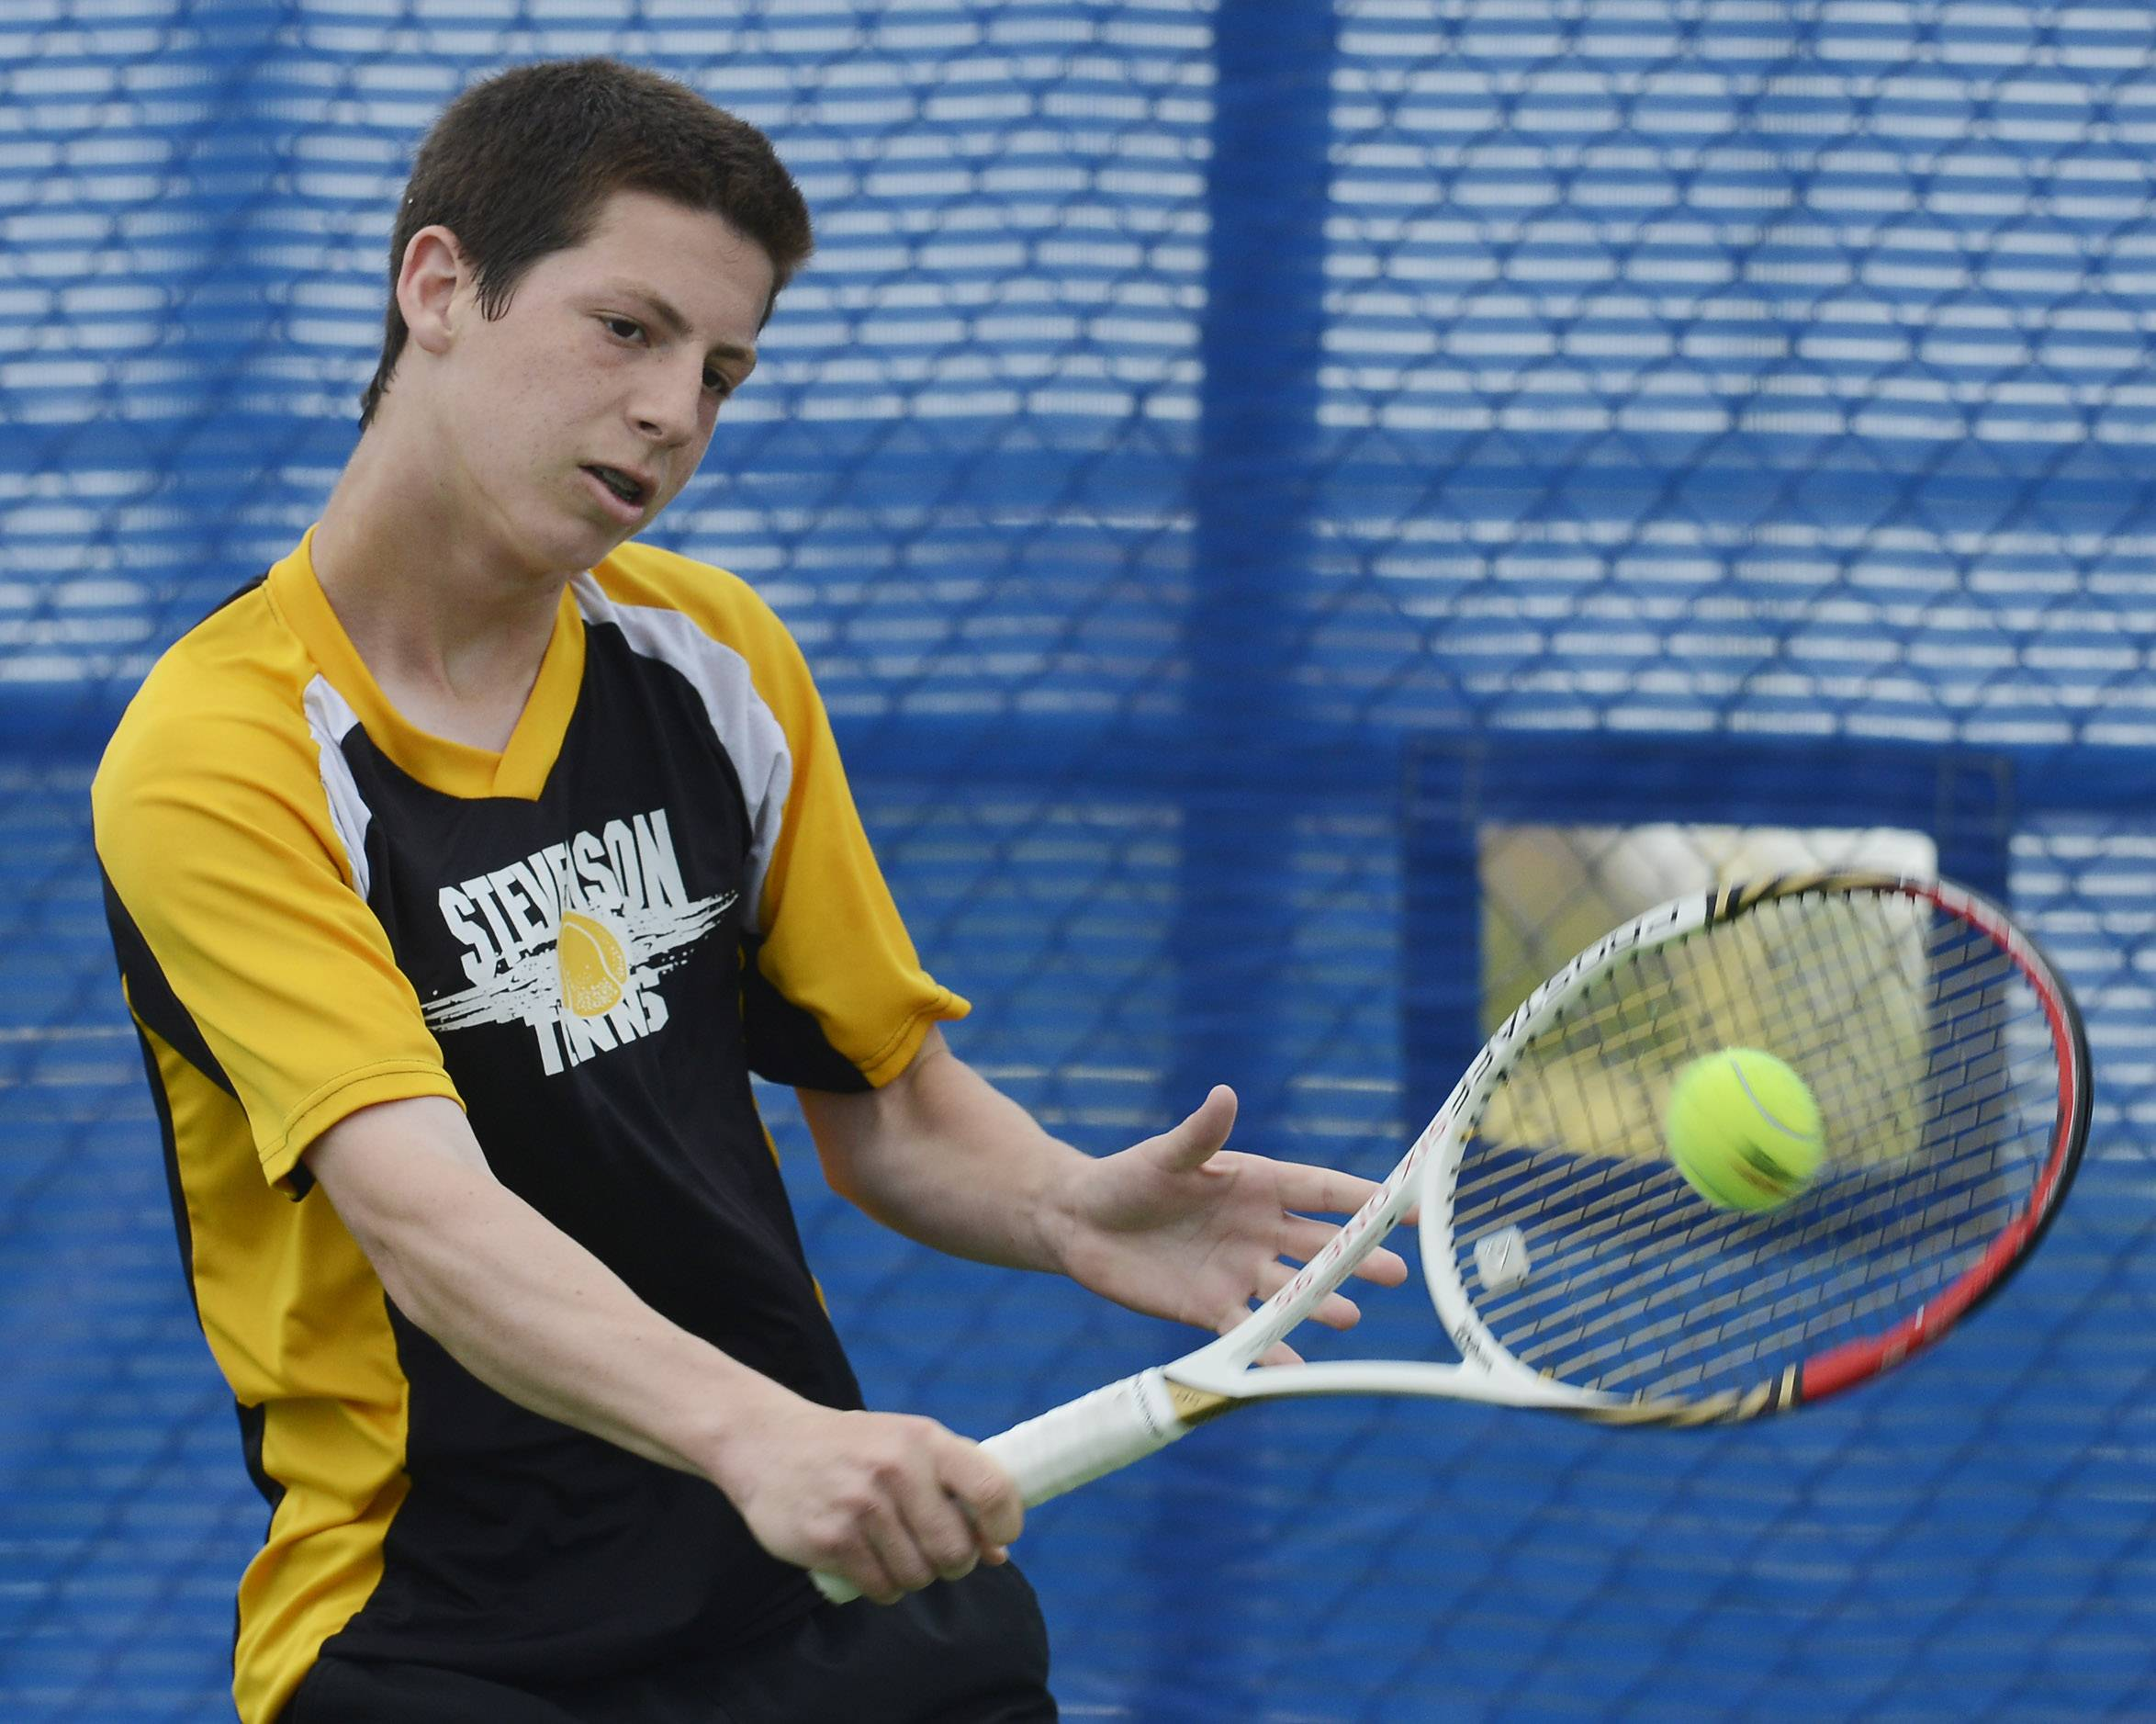 Stevenson's Benjamin Bush returns a shot during the boys tennis state tournament at Hoffman Estates High School on Thursday.